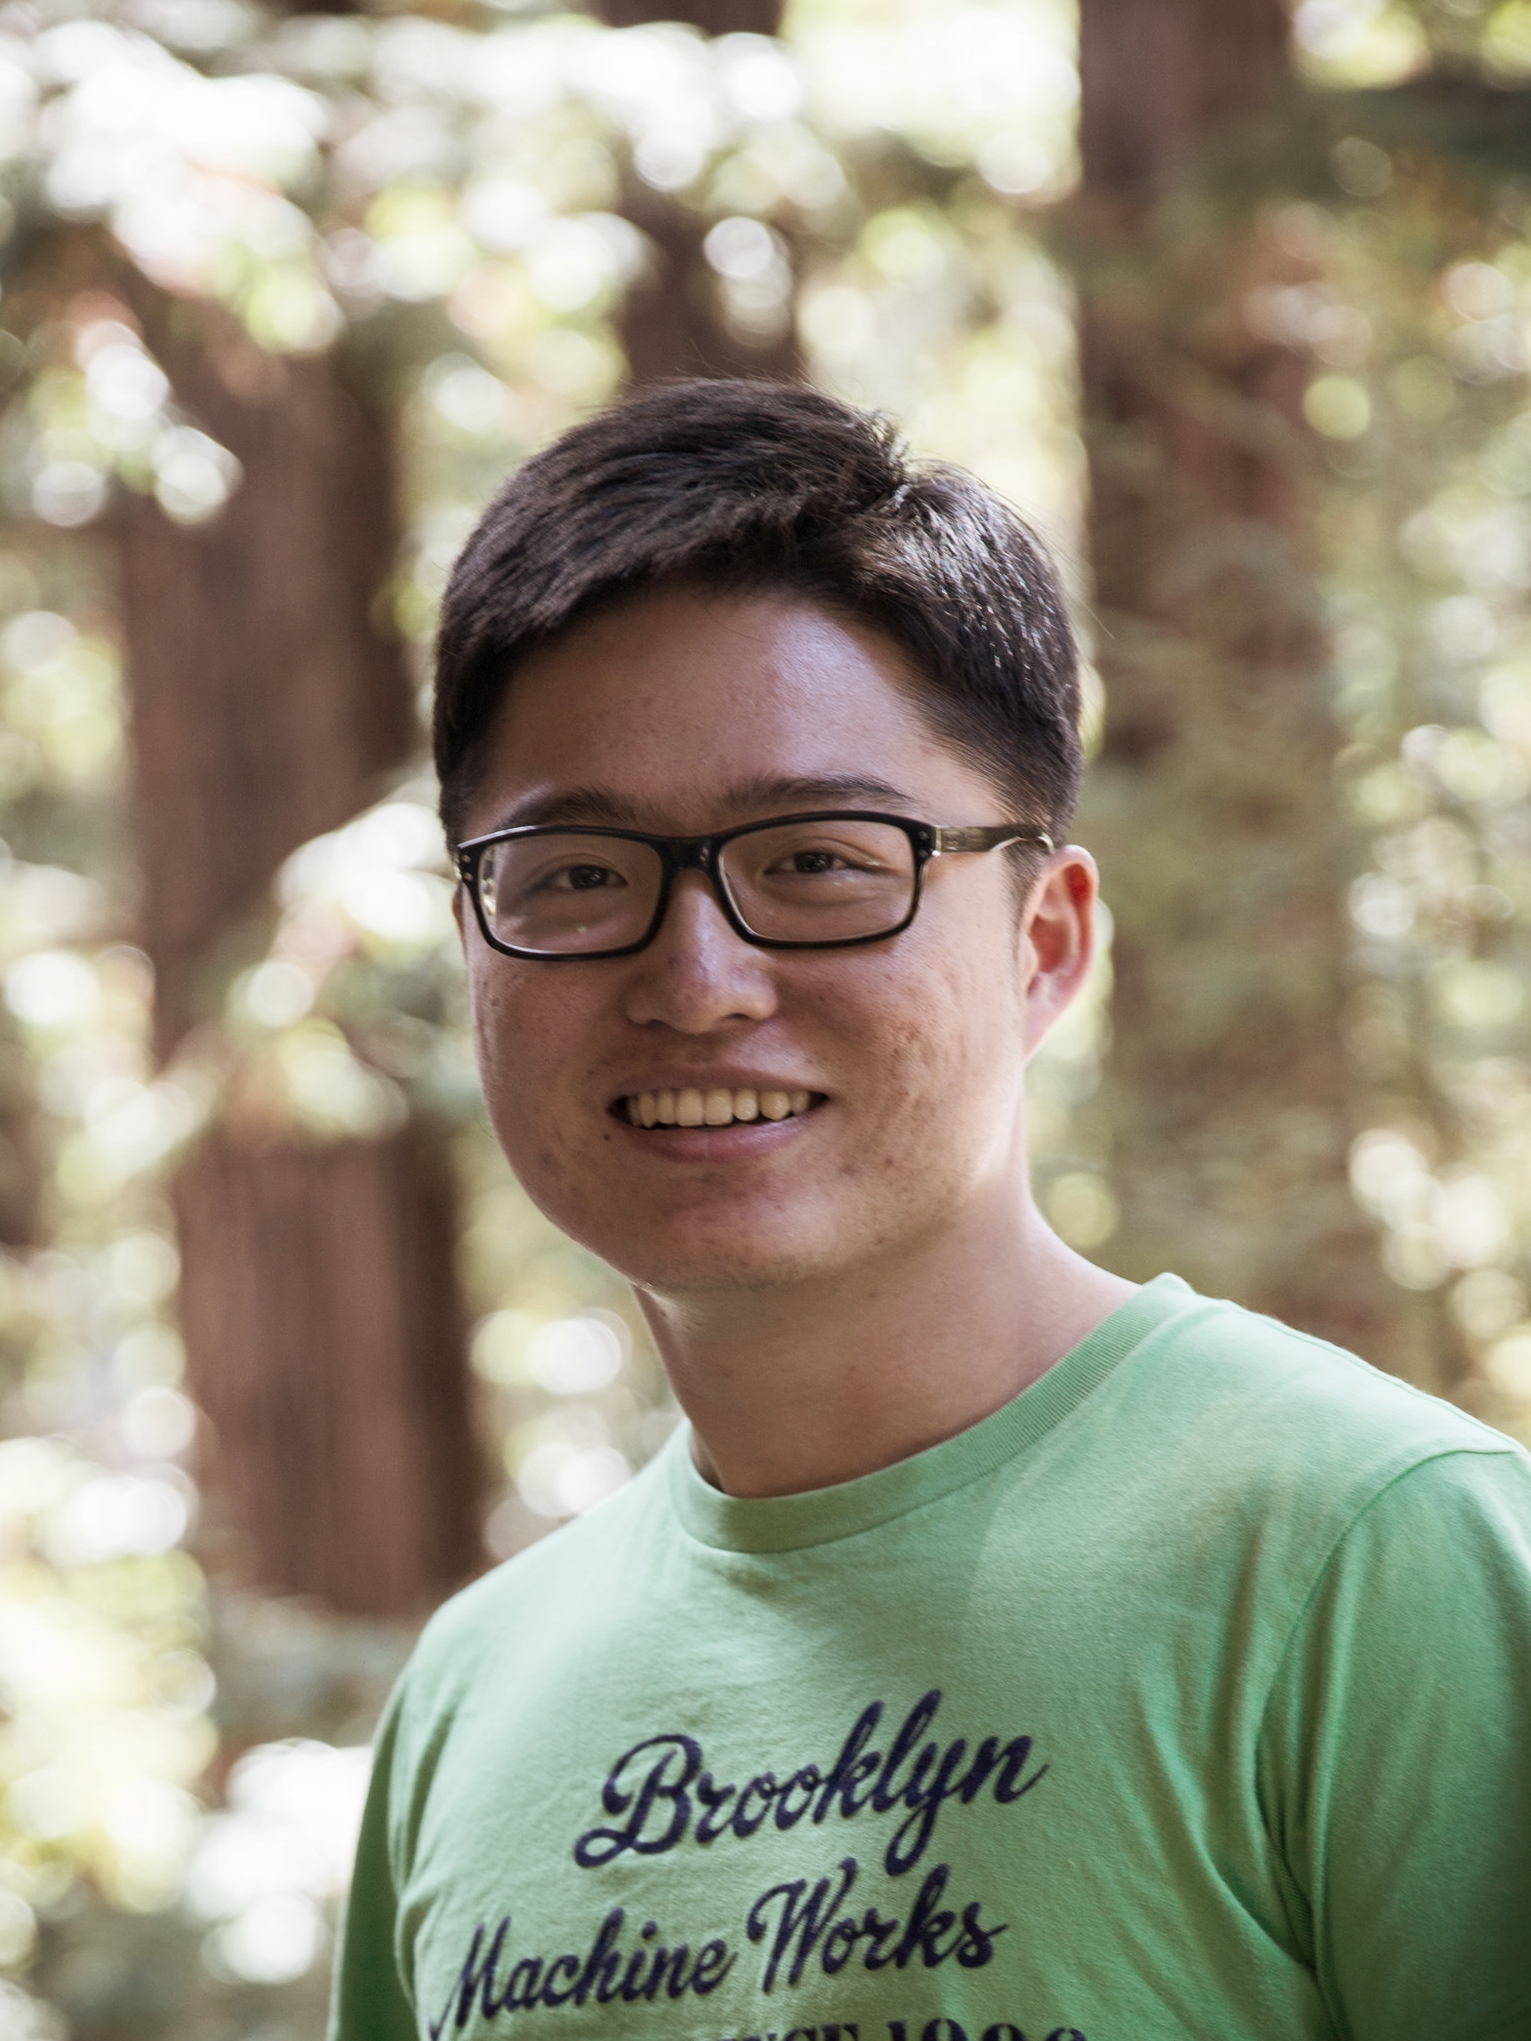 Yixiang (Louis) Li (Elect. & Comp. Eng.)  Yixiang received his  B.Sc. (2012)  and  M.Sc. (2015)  from  Wuhan University in Physics  and now pursuing his  PhD in Electrical & Computer Engineering at UCSC . His research is currently focused on the fabrication and characterization of surface acoustic wave(SAW) devices, microfluidics systems, and its applications. He is presently working on multifunctional SAW device by incorporating phononic crystal into microfluidic systems.